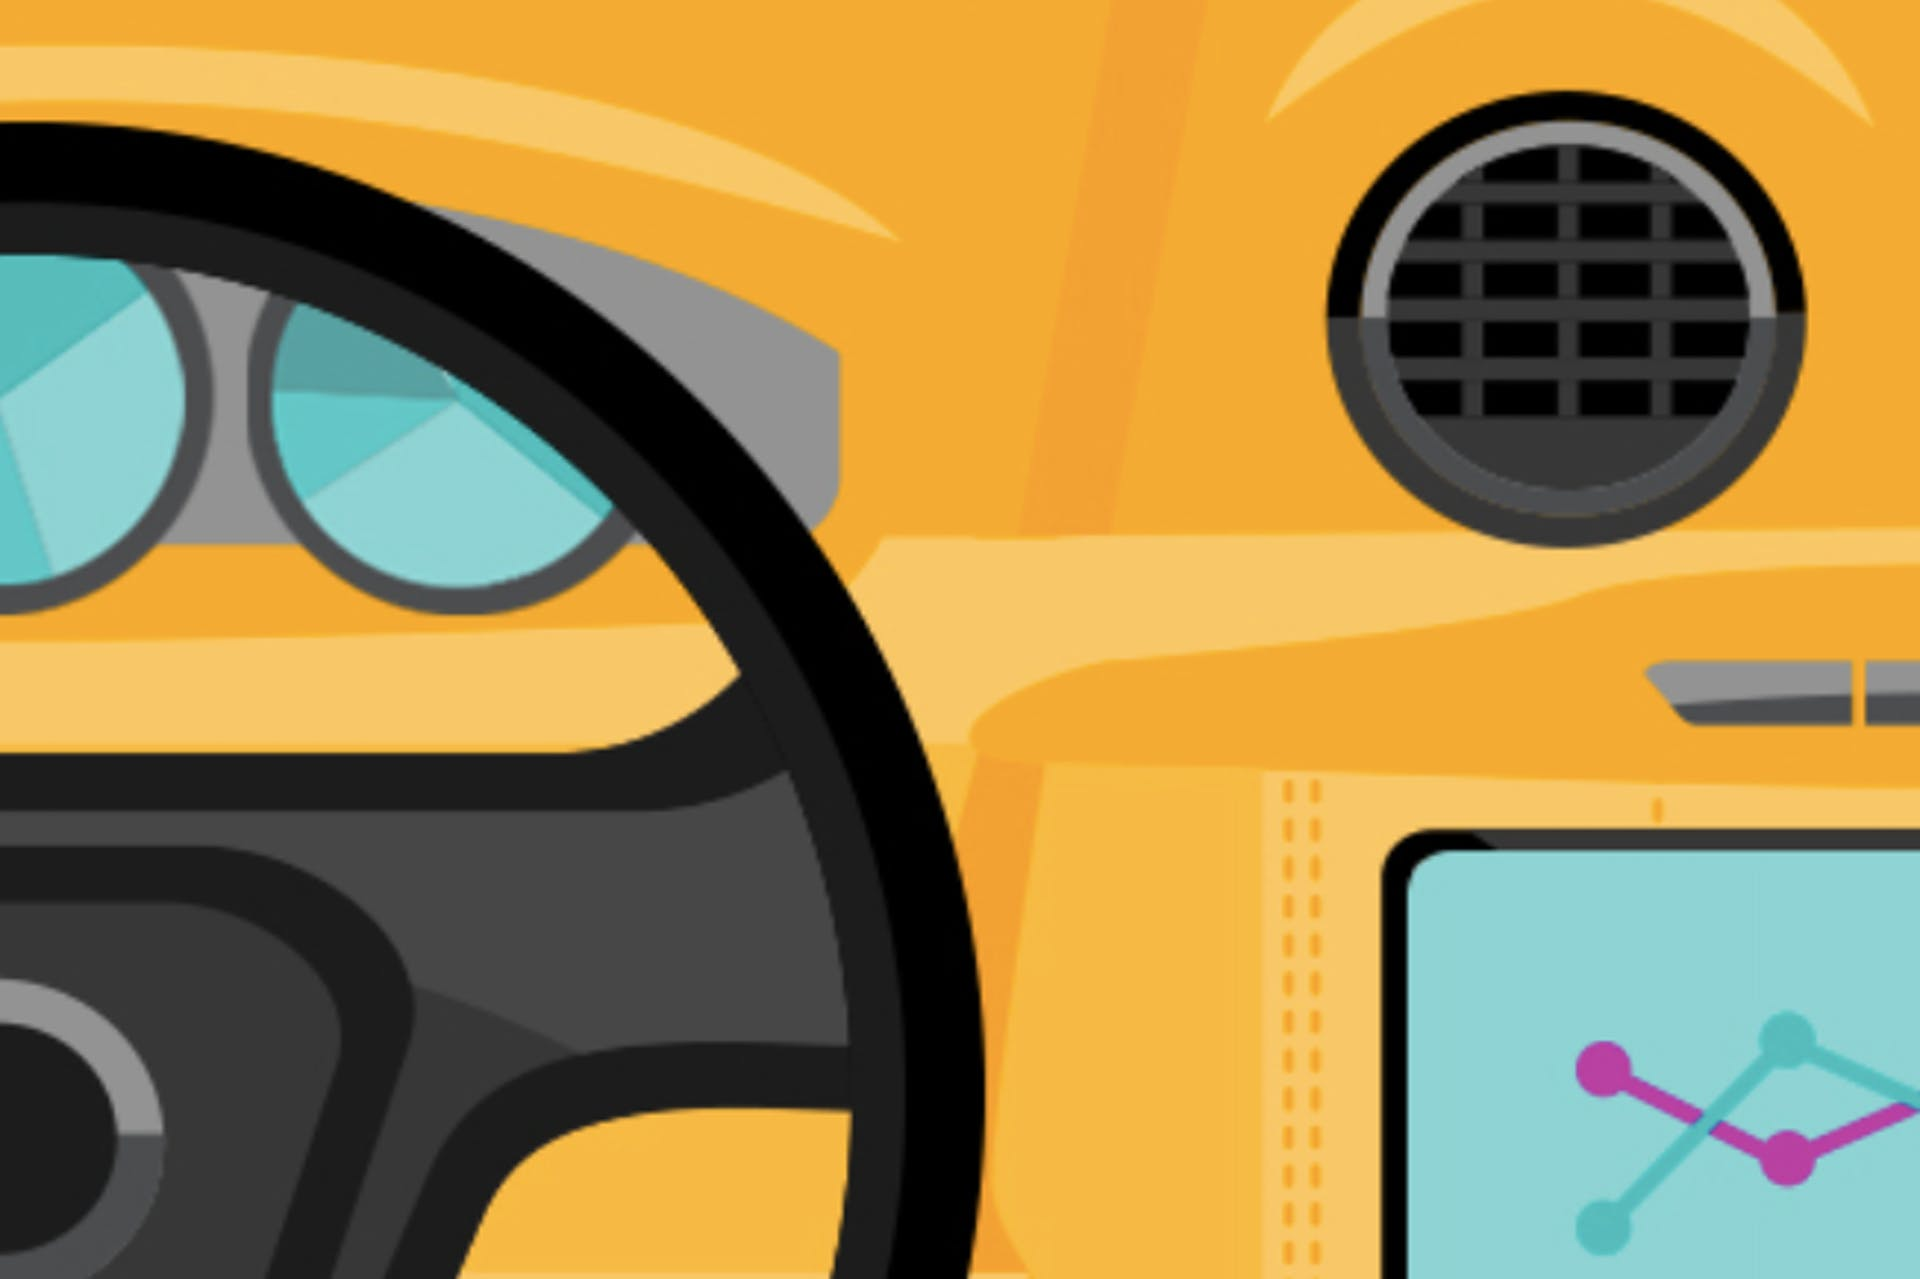 Illustration of a car dashboard on a yellow background